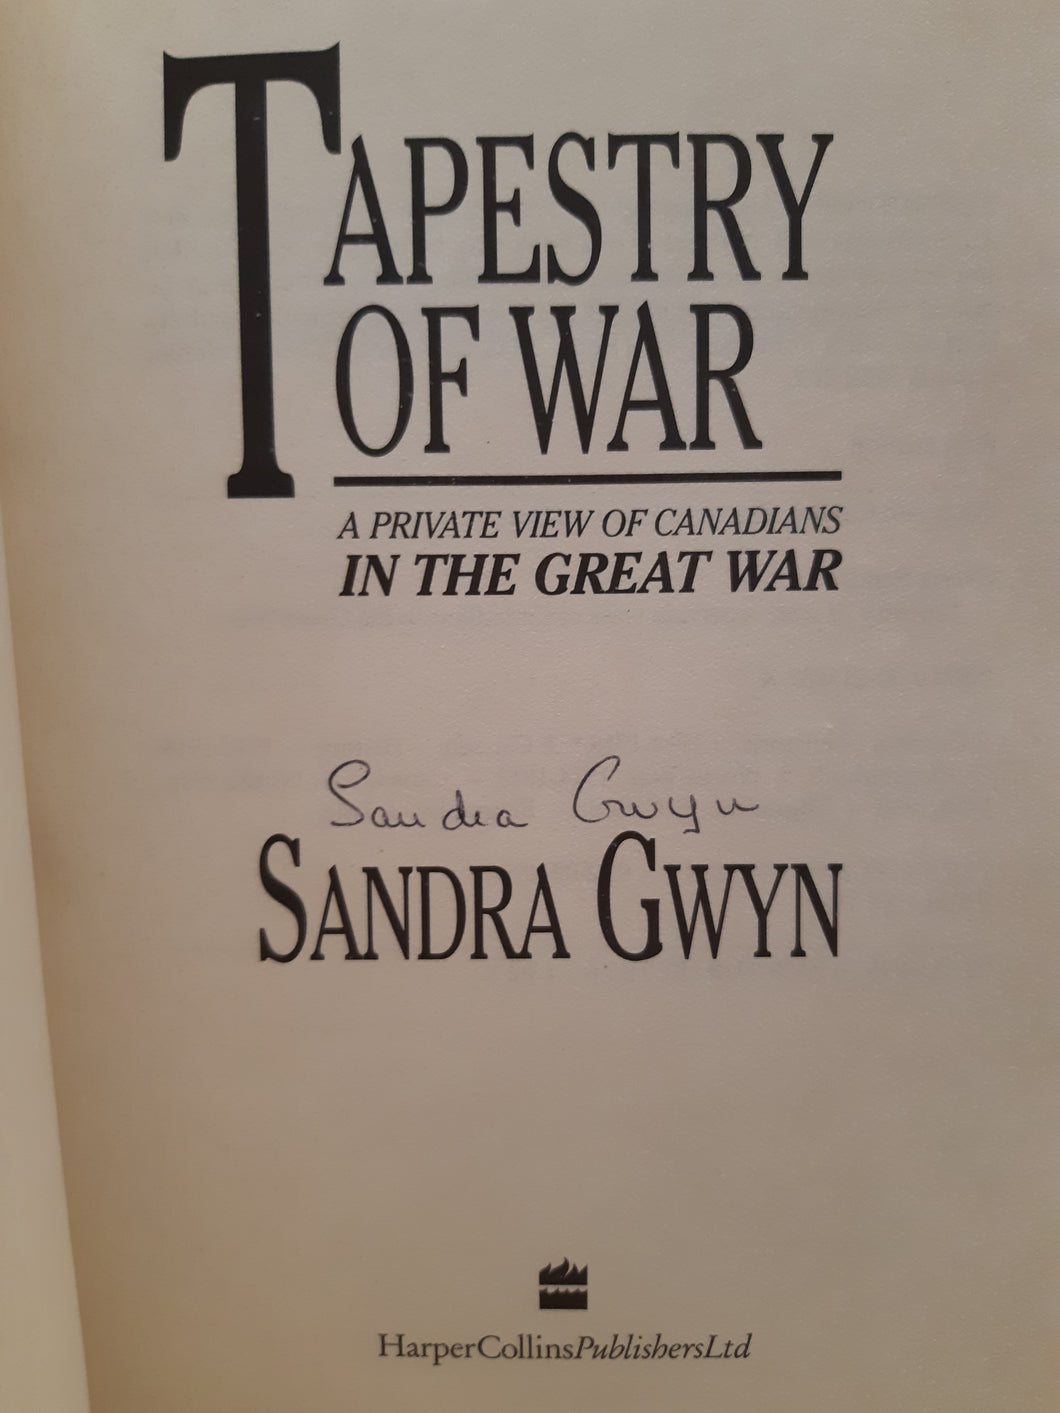 Tapestry of War by Sandra Gwyn